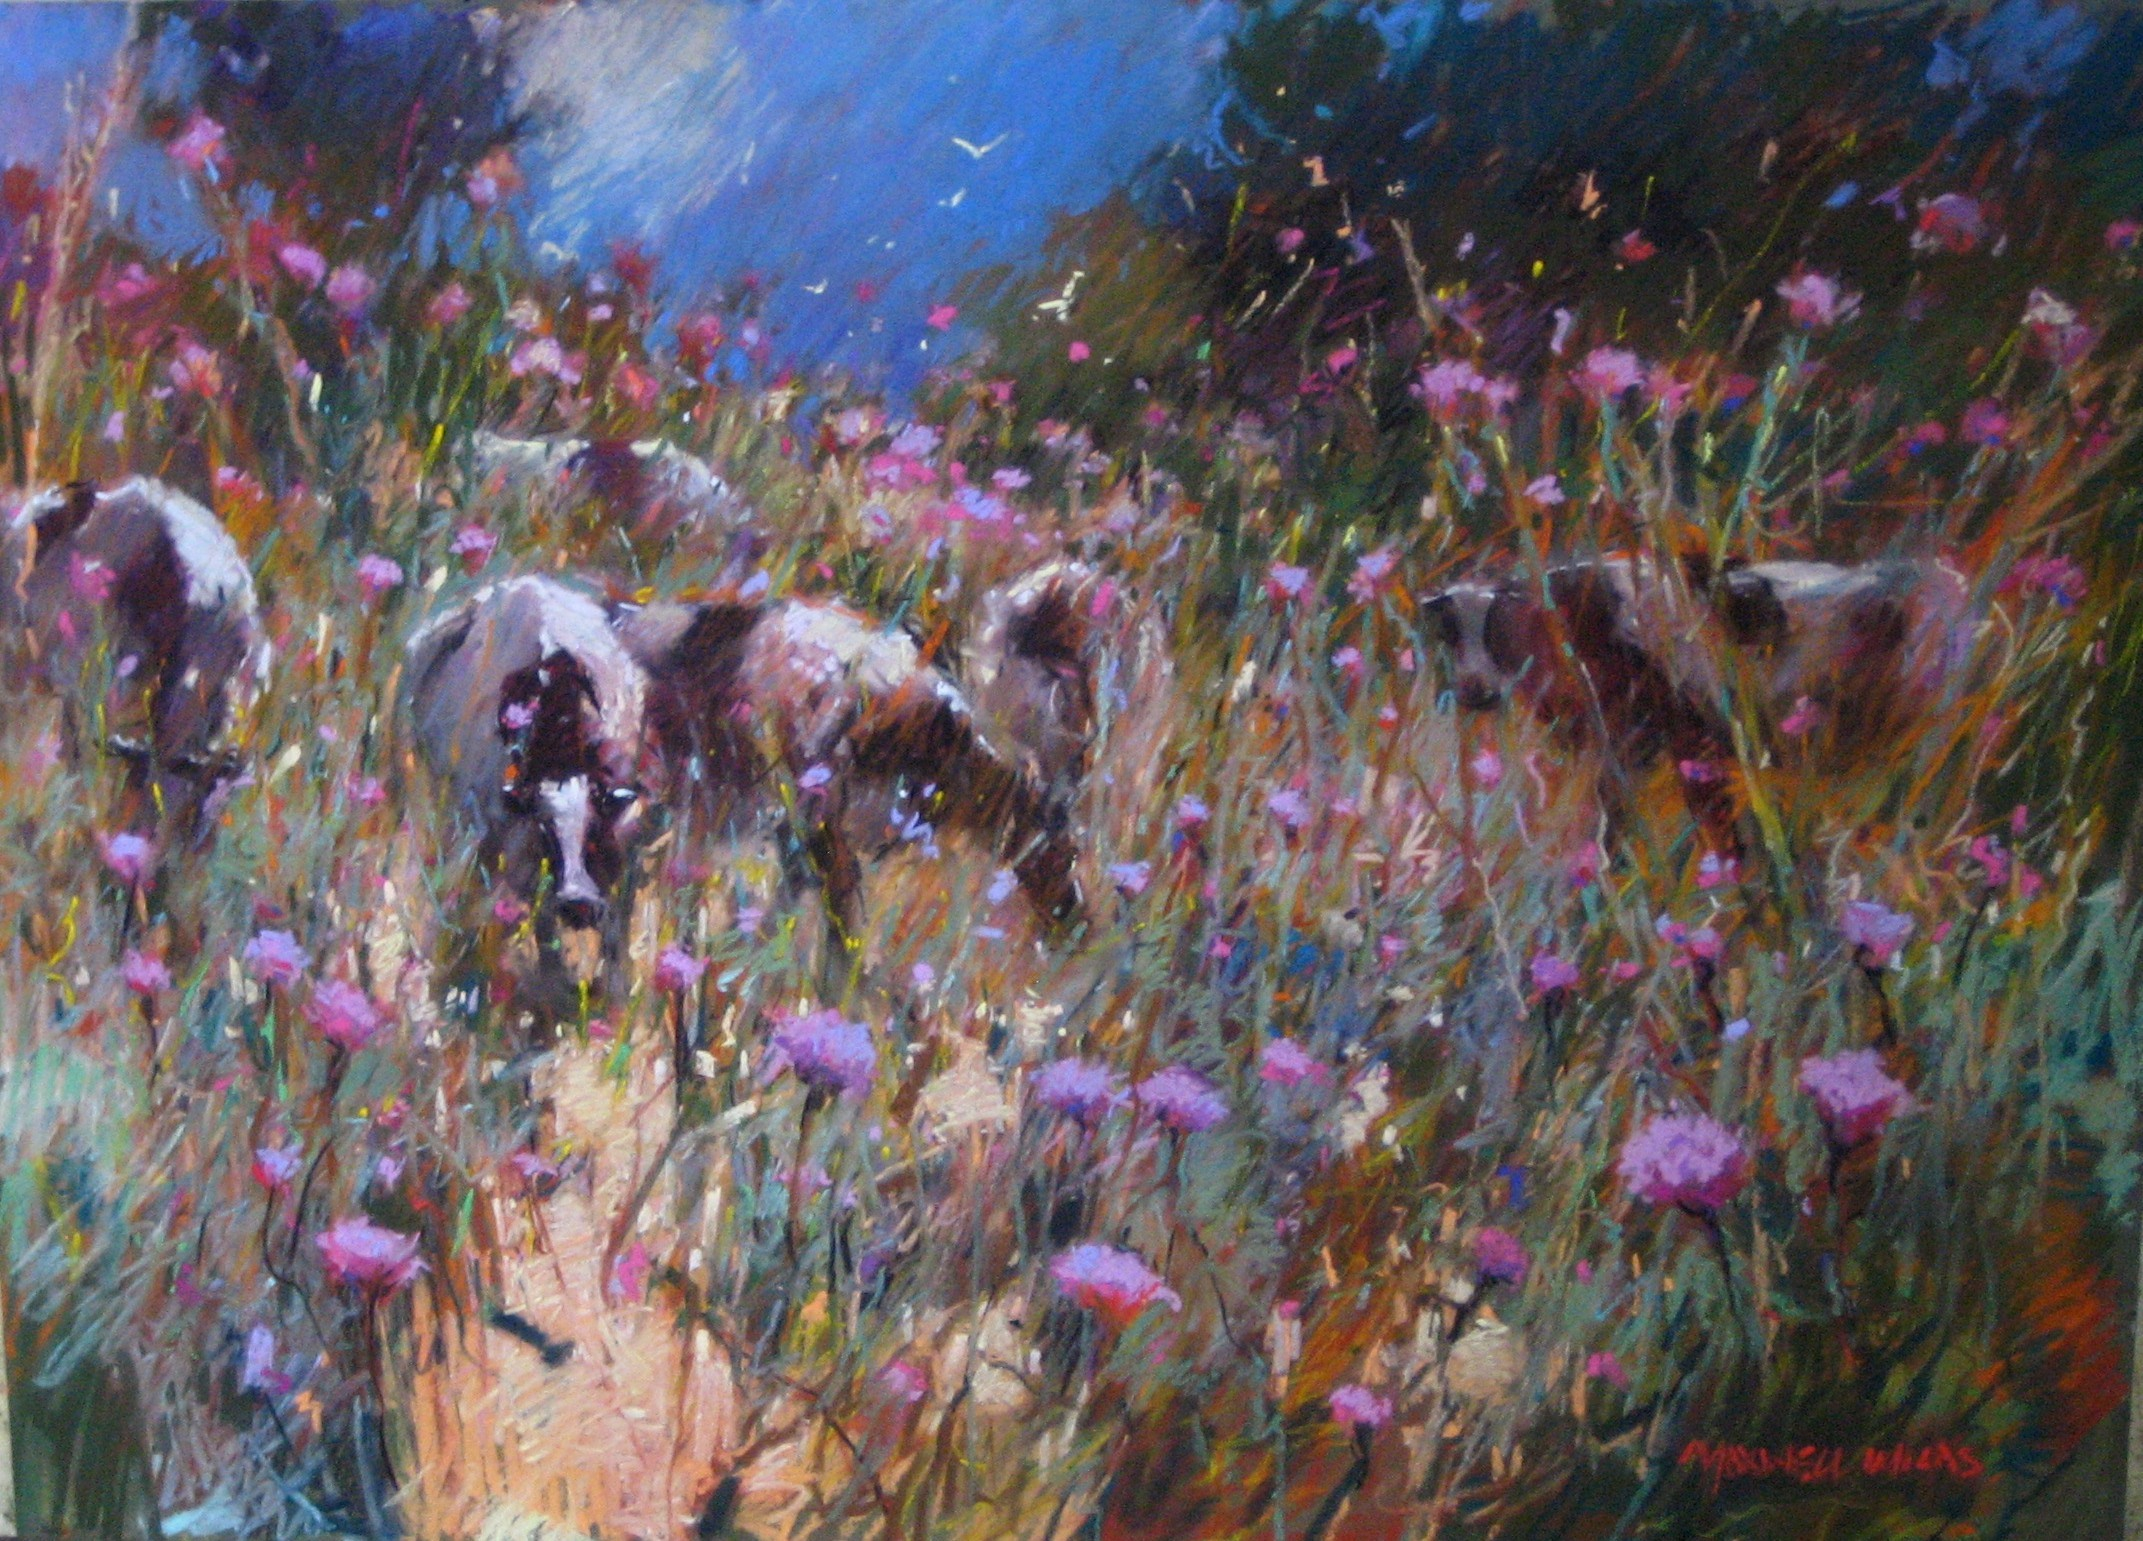 Wandering among the thistles. Pastel. 76x55cm